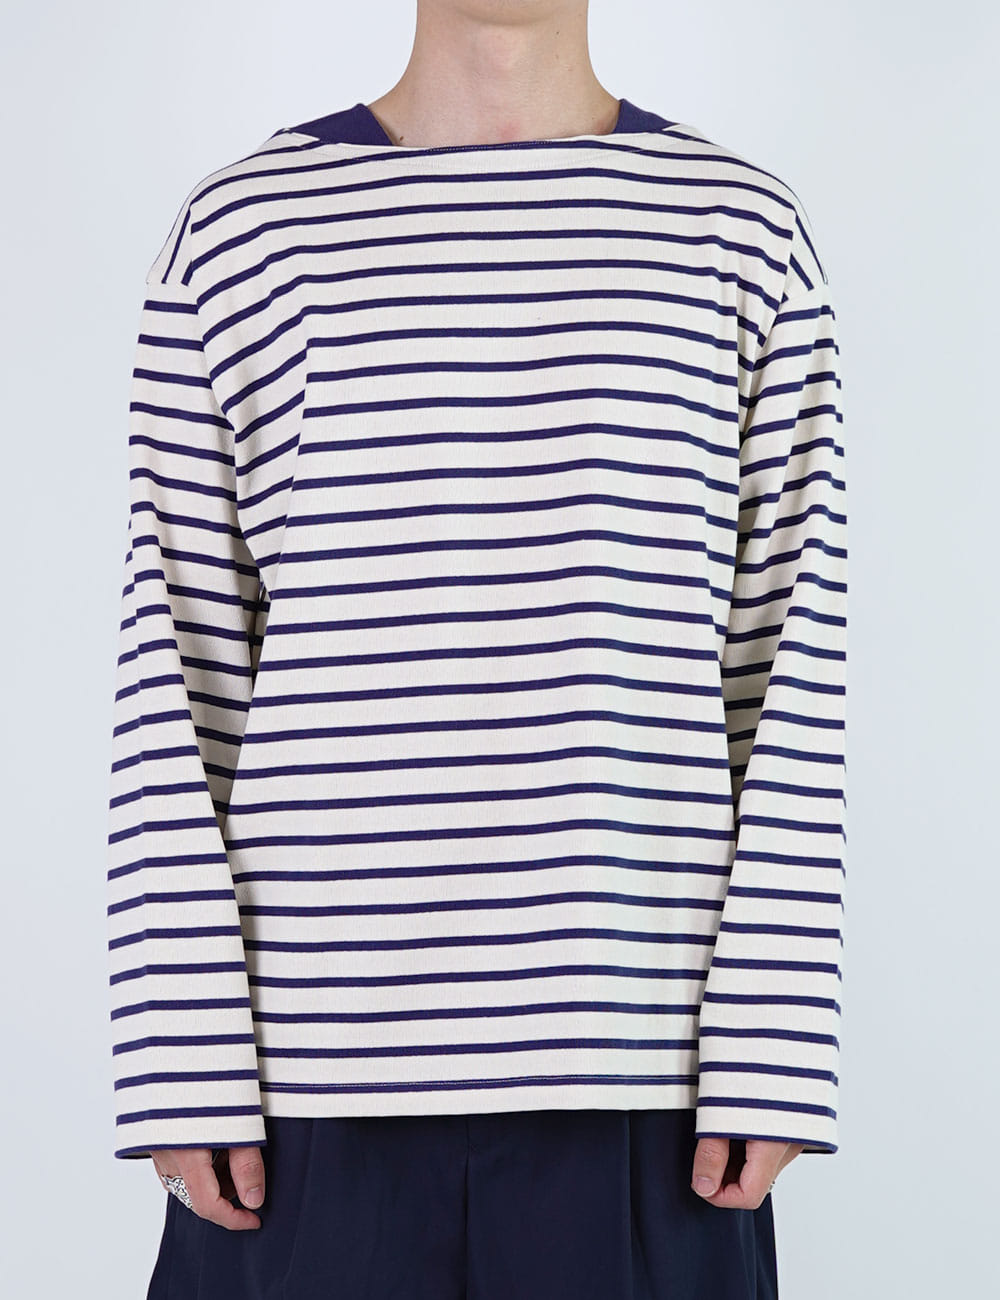 URU : COTTON BORDER BOAT NECK TEE (WHITE/NAVY)